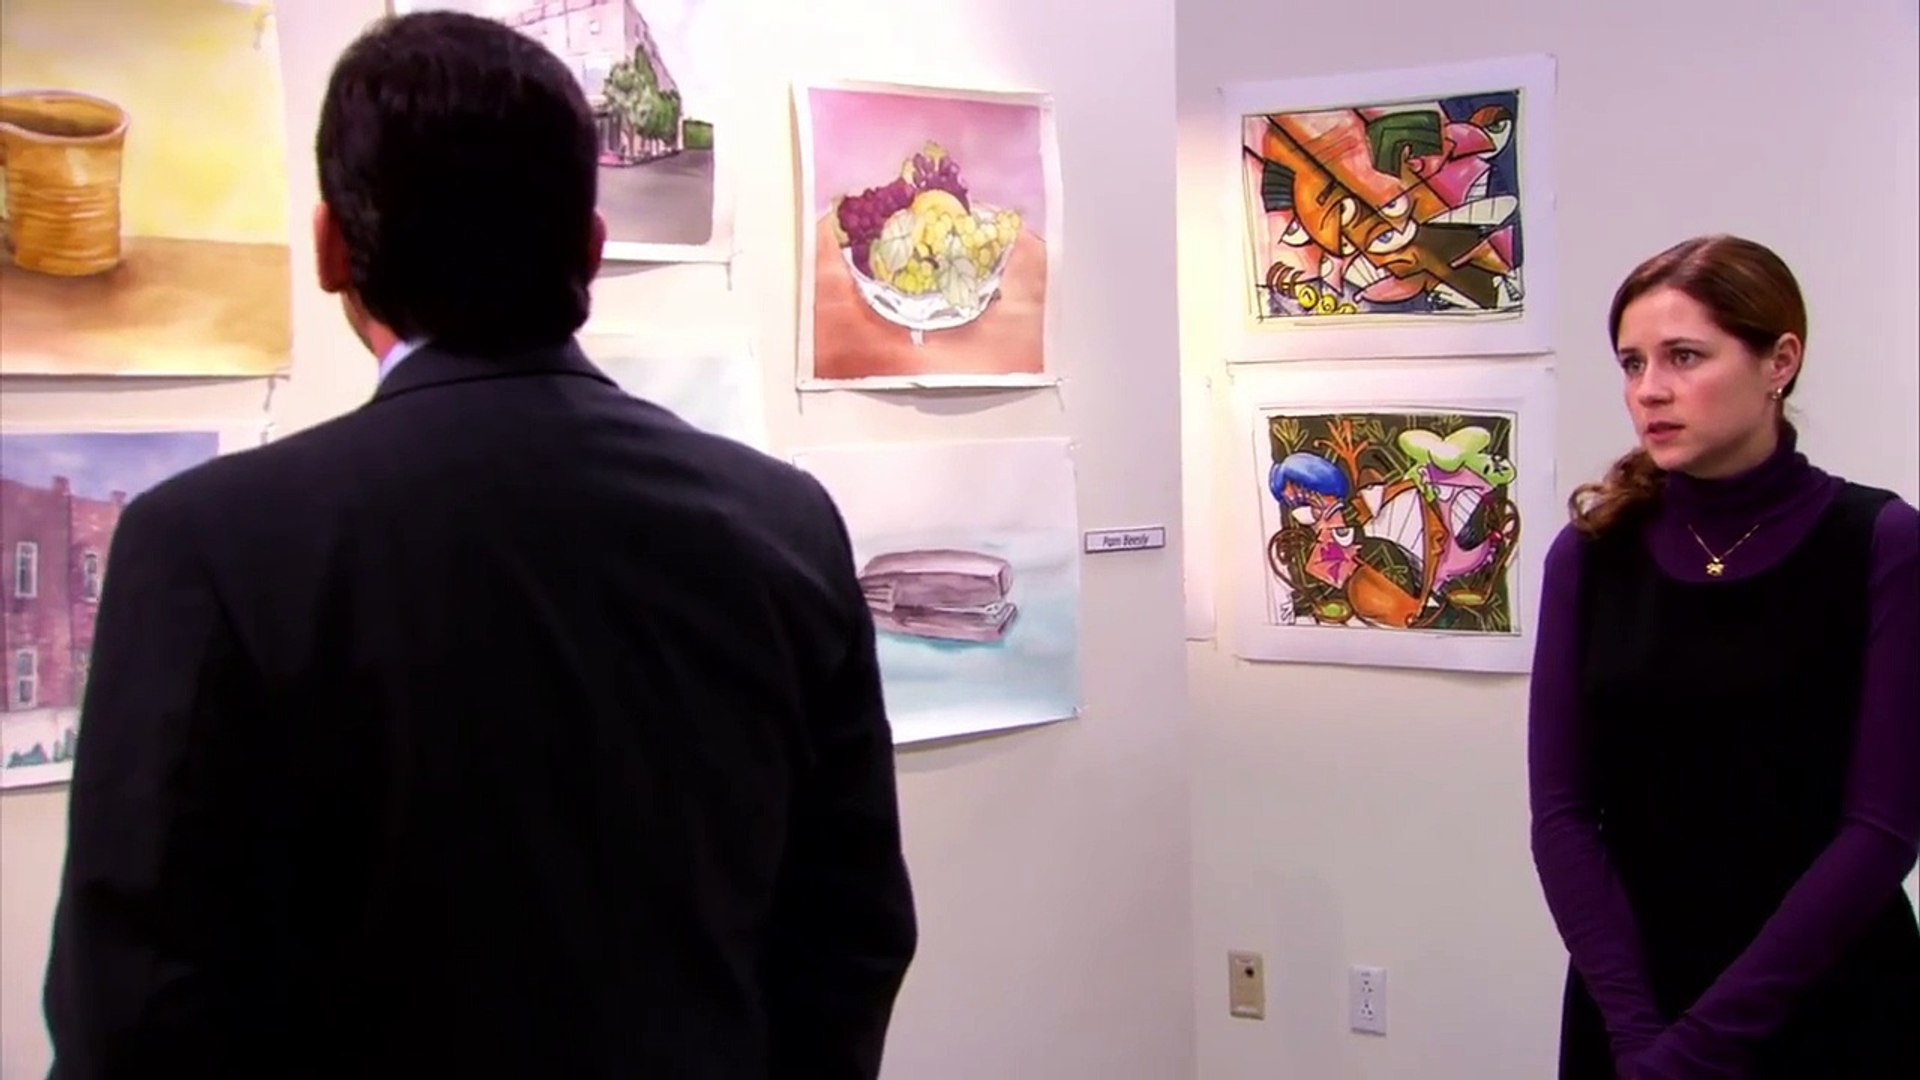 Pams Art Exhibition The Office Us